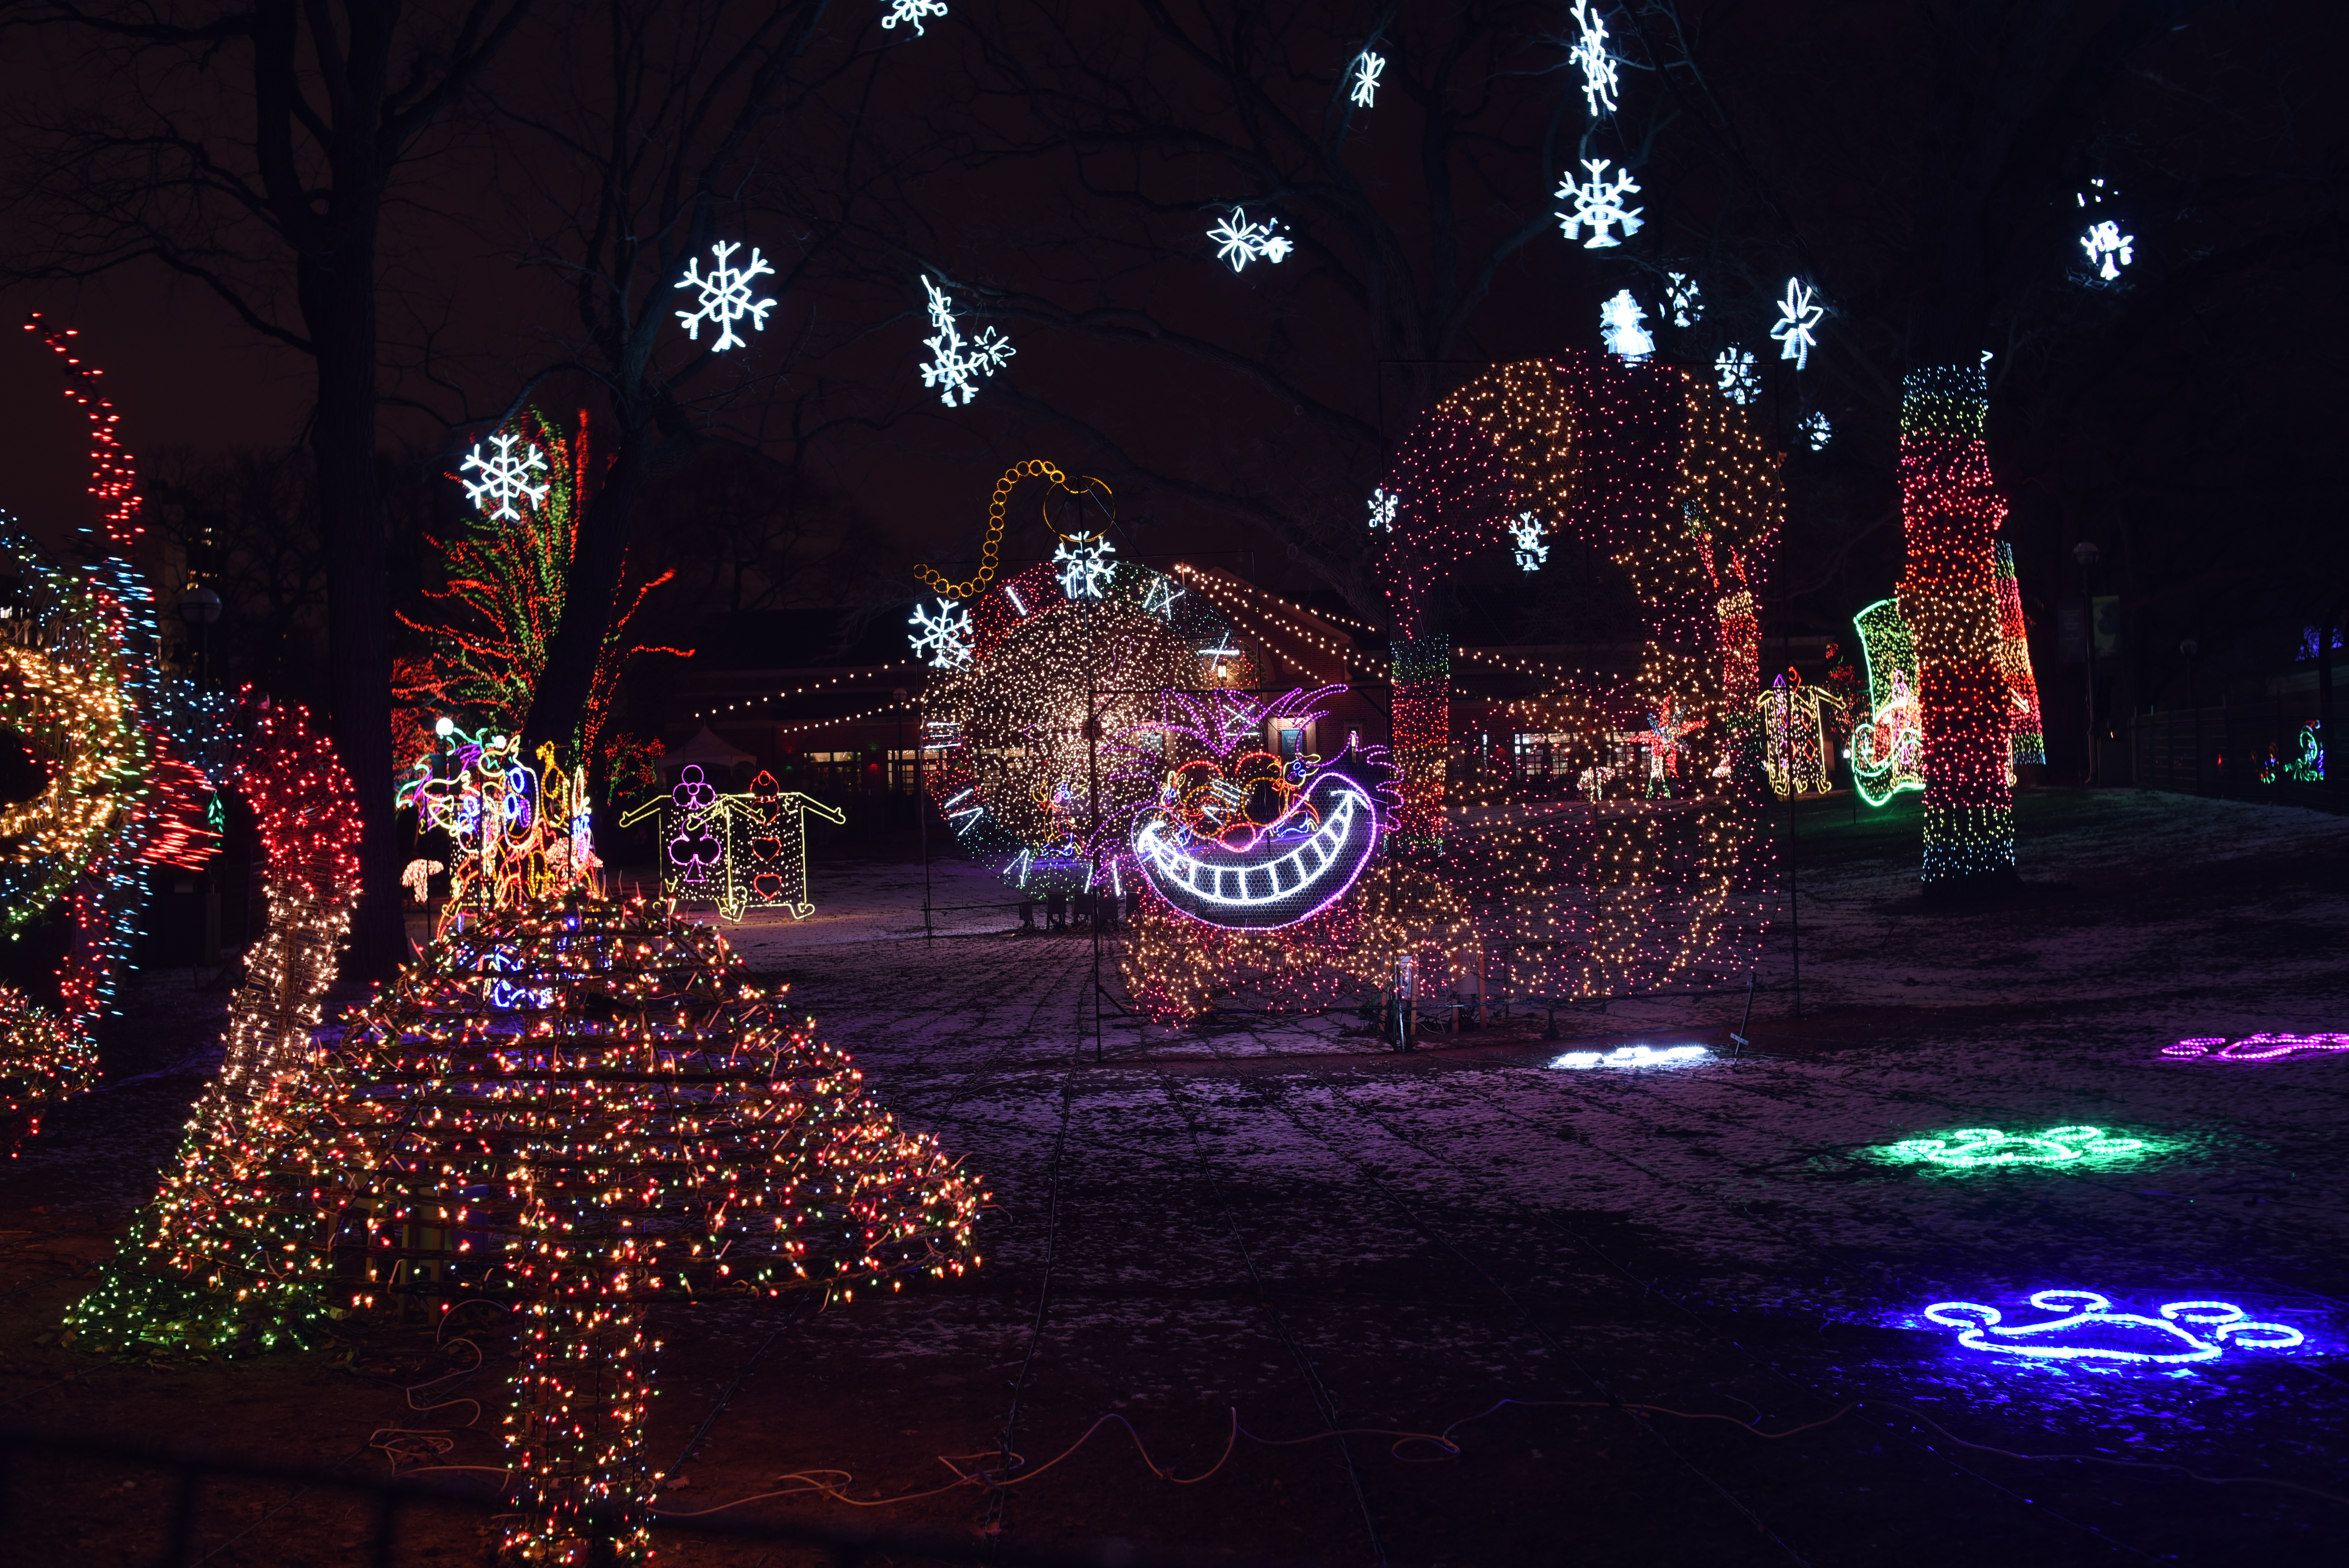 A magical holiday light display with snowflakes, animals, and light projections.